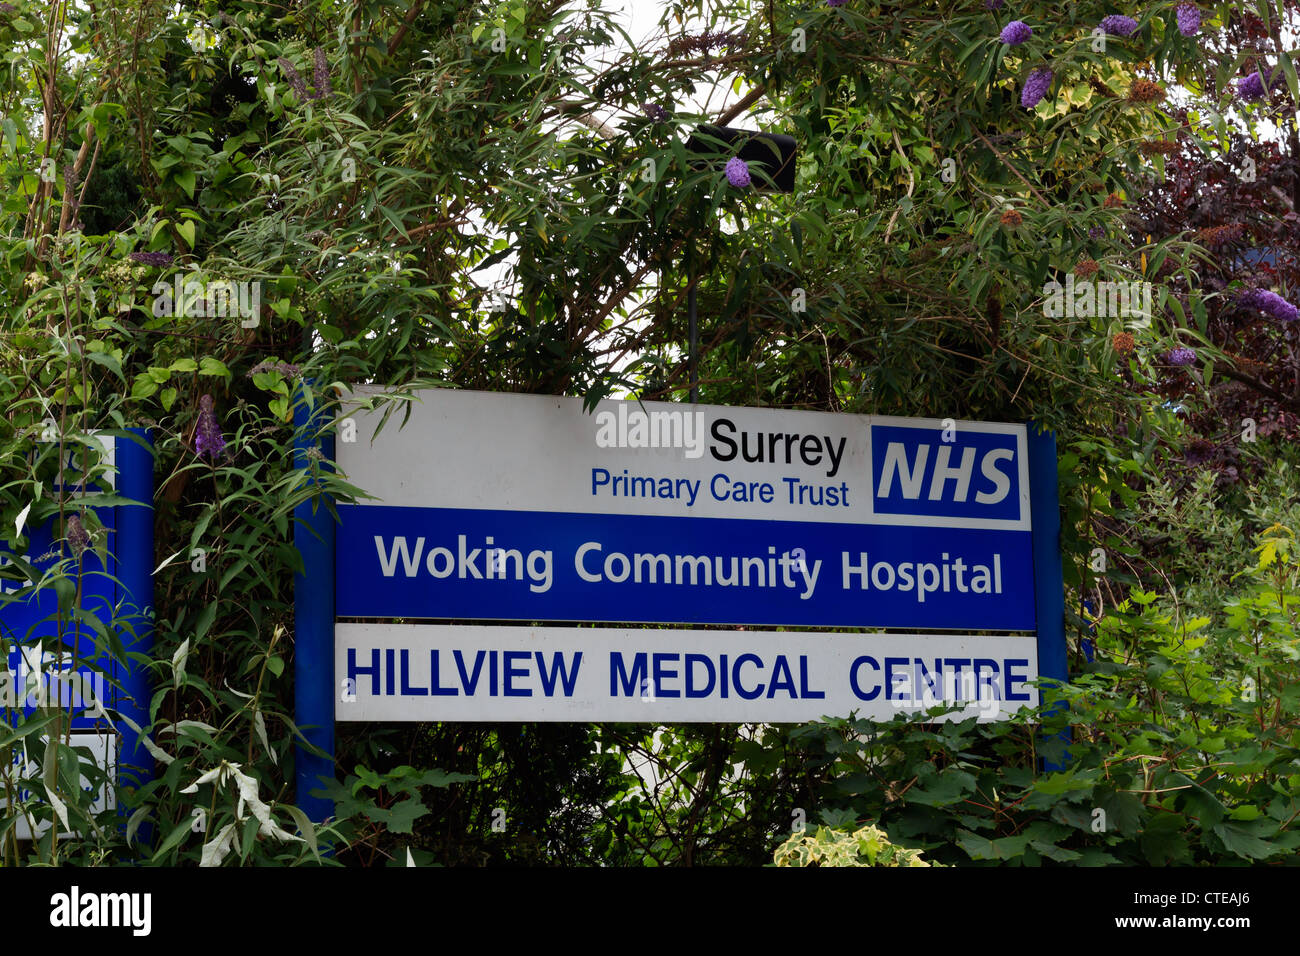 Woking Community Hospital Hillview medical centre sign - Stock Image